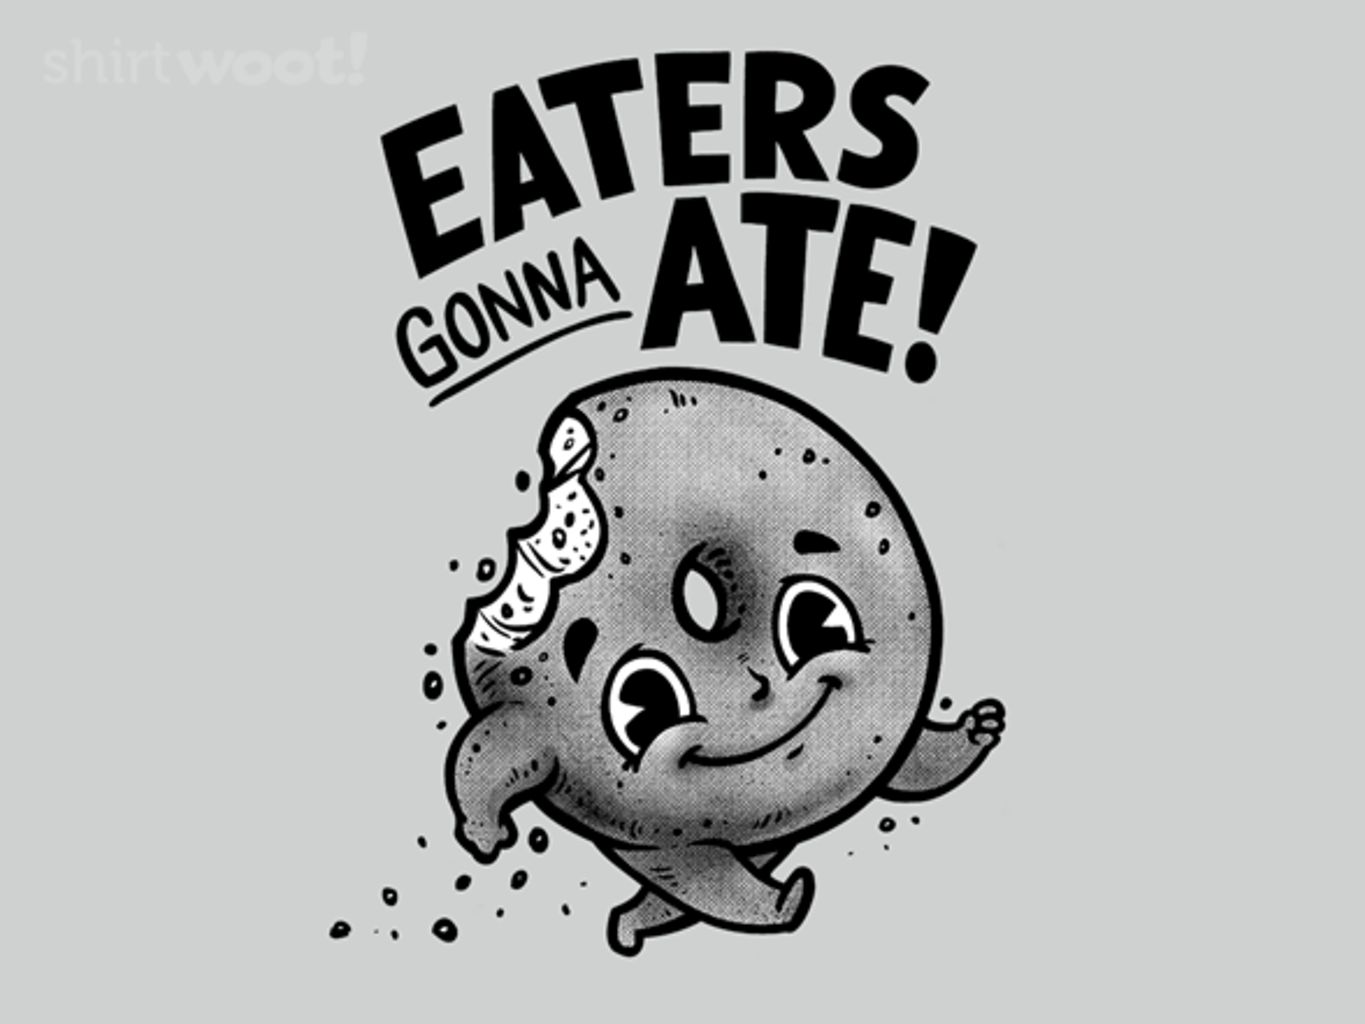 Woot!: Eaters Gonna Ate